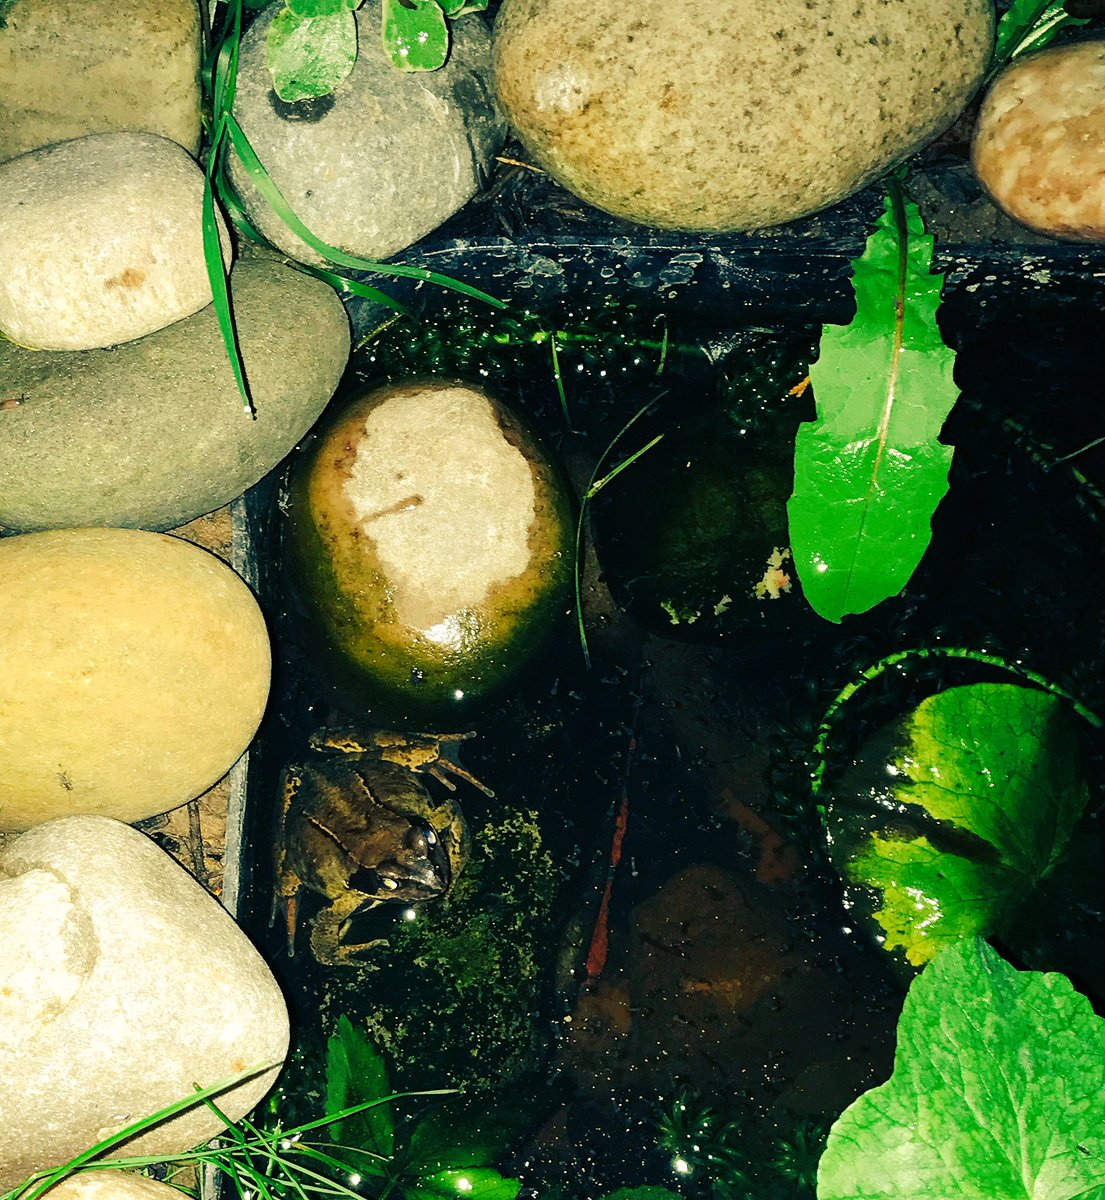 And there he is  #frog resident frog in our washing up bowl pond @Natures_Voice @Britnatureguide @BBCSpringwatch @BBCCountryfile up for air<br>http://pic.twitter.com/zZceM6O4th